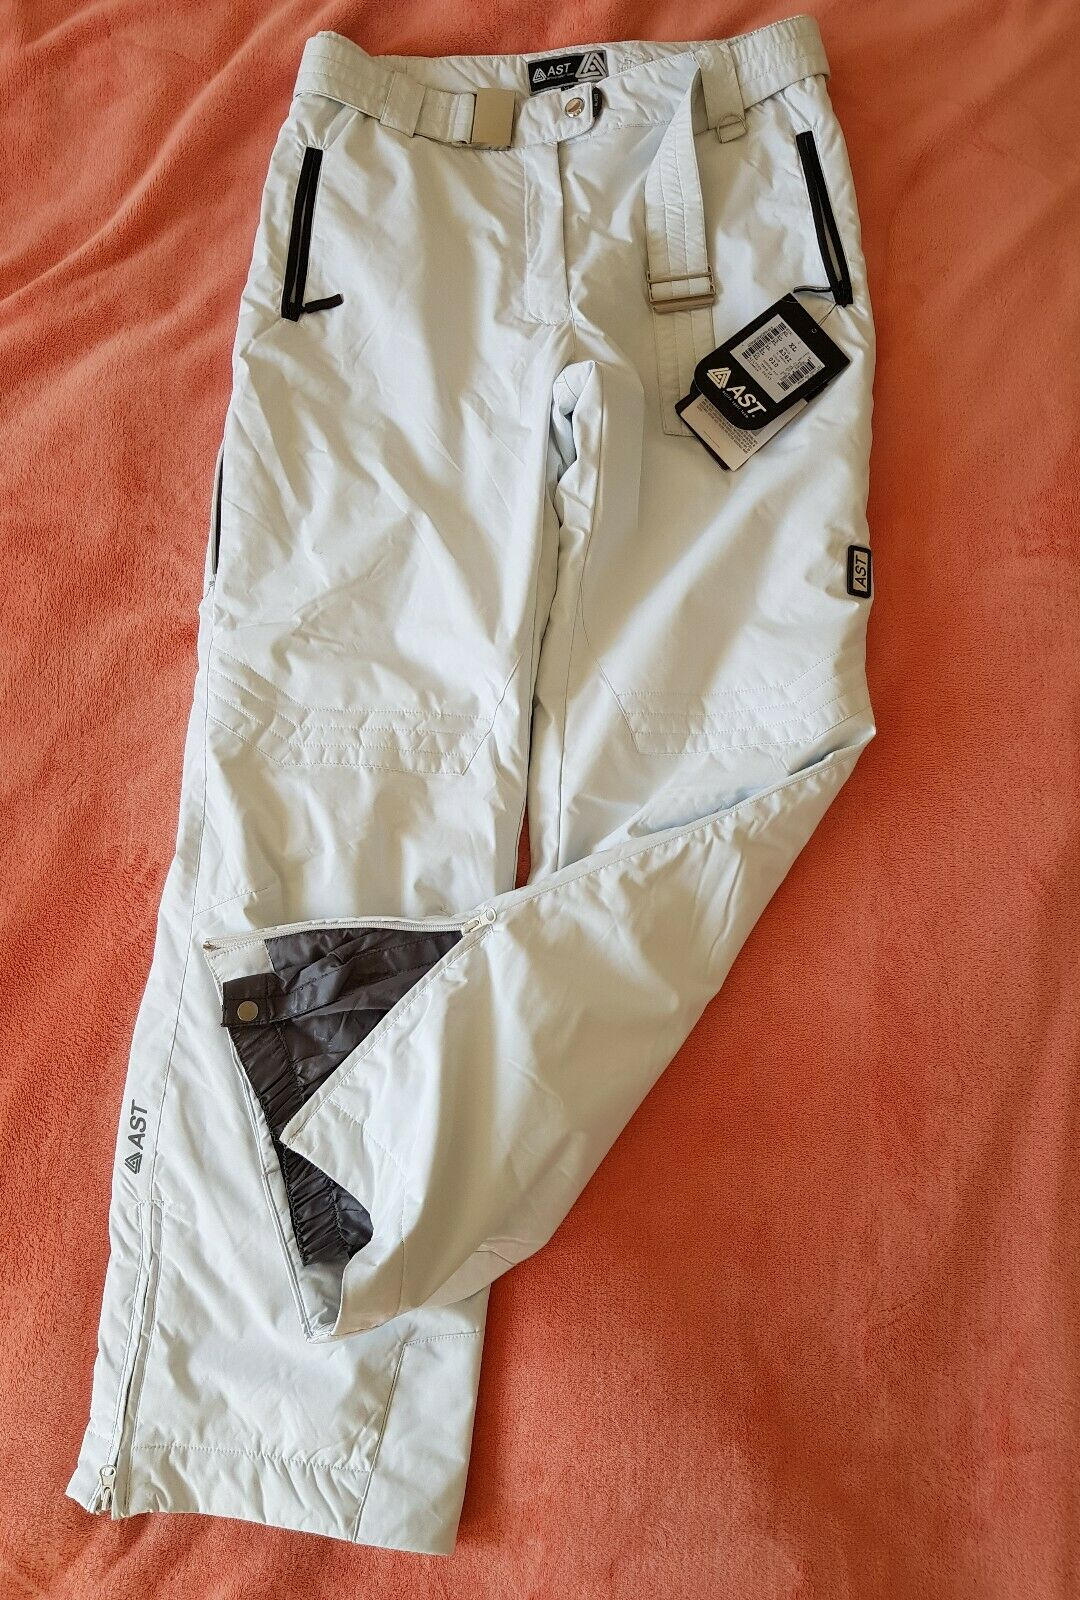 Women's AST Ski Trousers A381 Model White color Size  XL- BNWT  70% off